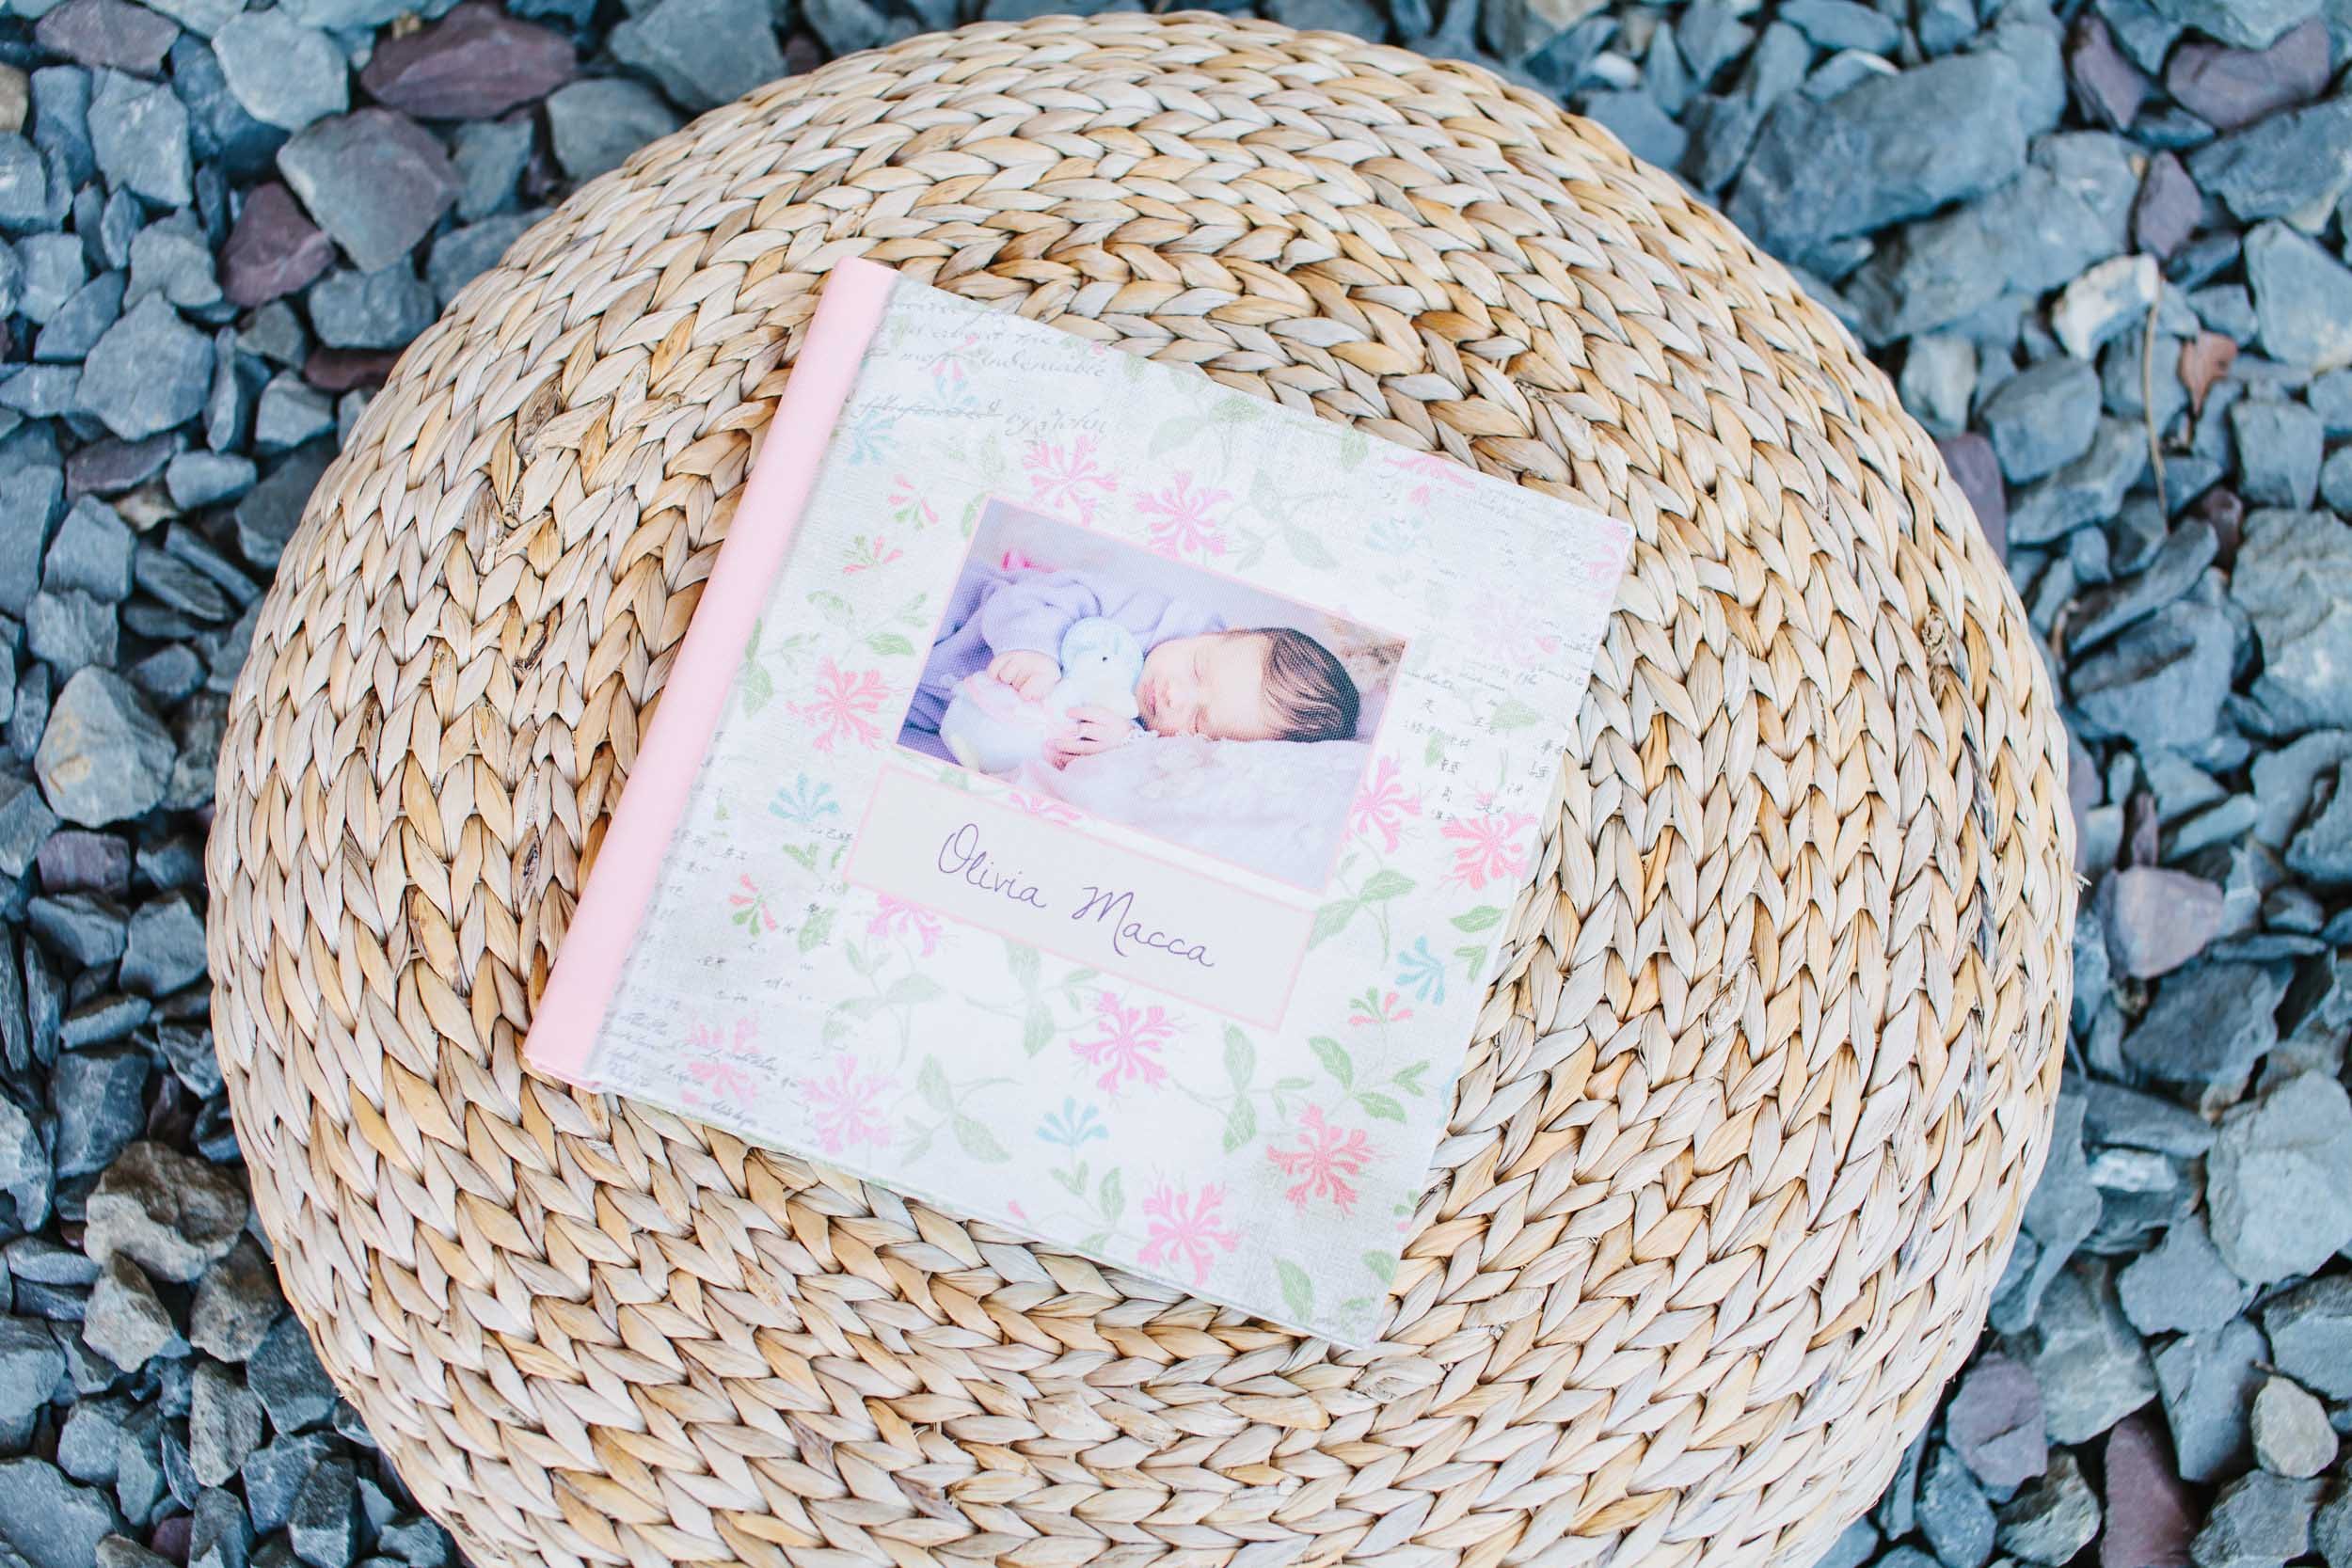 Portrait albums - Find out more about portrait albums and browse the galleries of different album styles and designs.